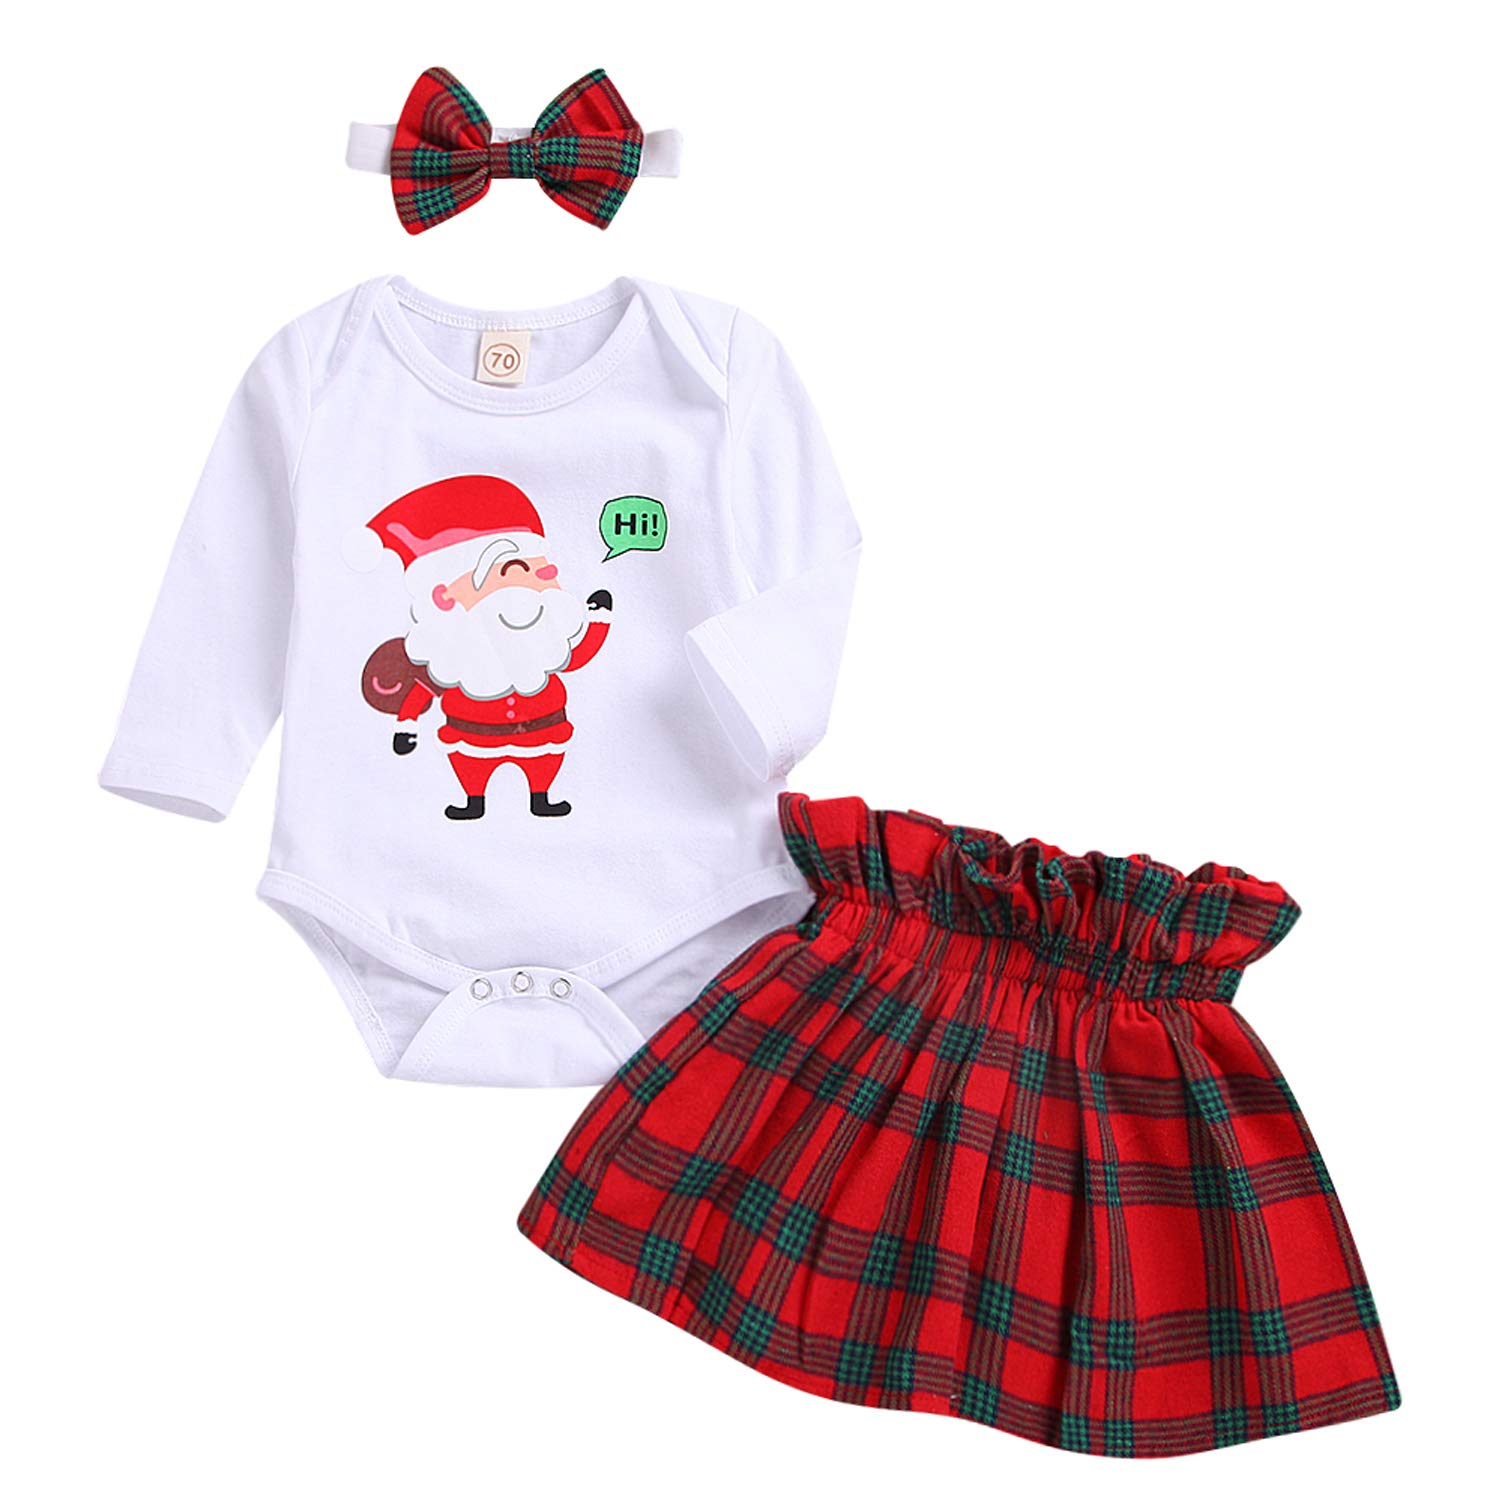 MAMOWEAR Newborn Baby Girl Christmas Outfits My First Christmas ...